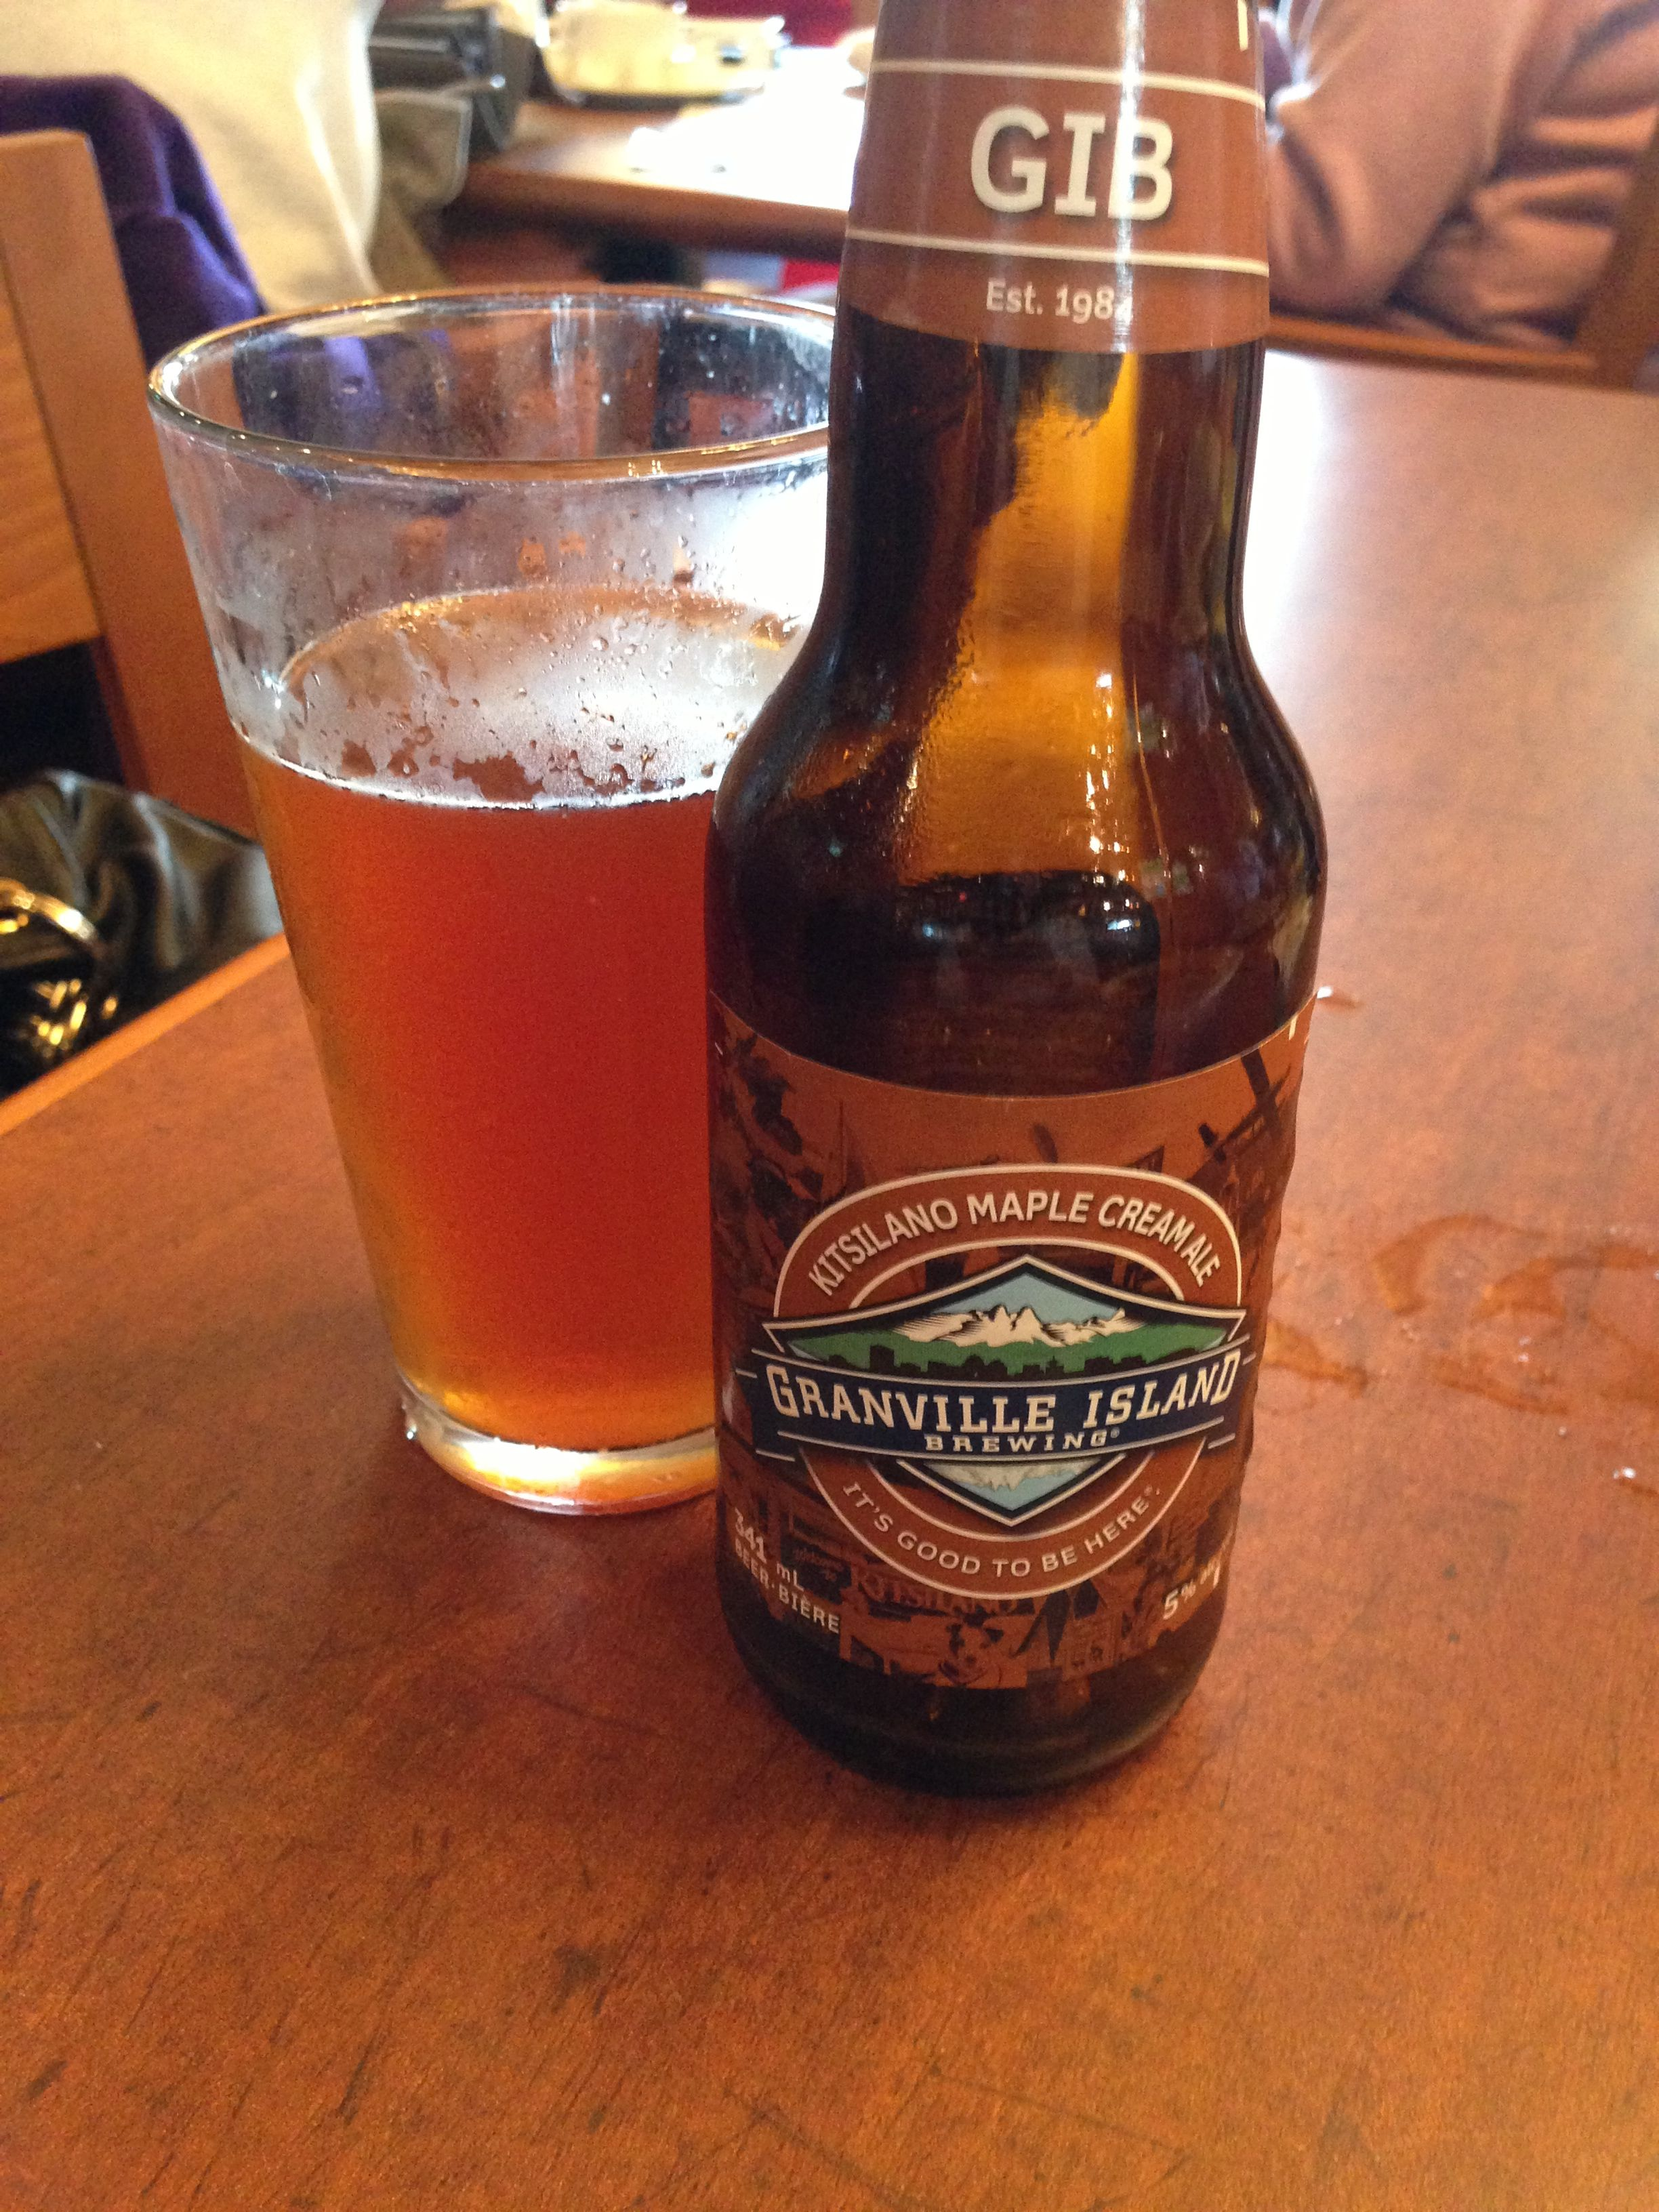 Kitsalano Maple Cream Ale By Granville Island Brewing Is A Slightly Sweet Creamy Ale At 5 0